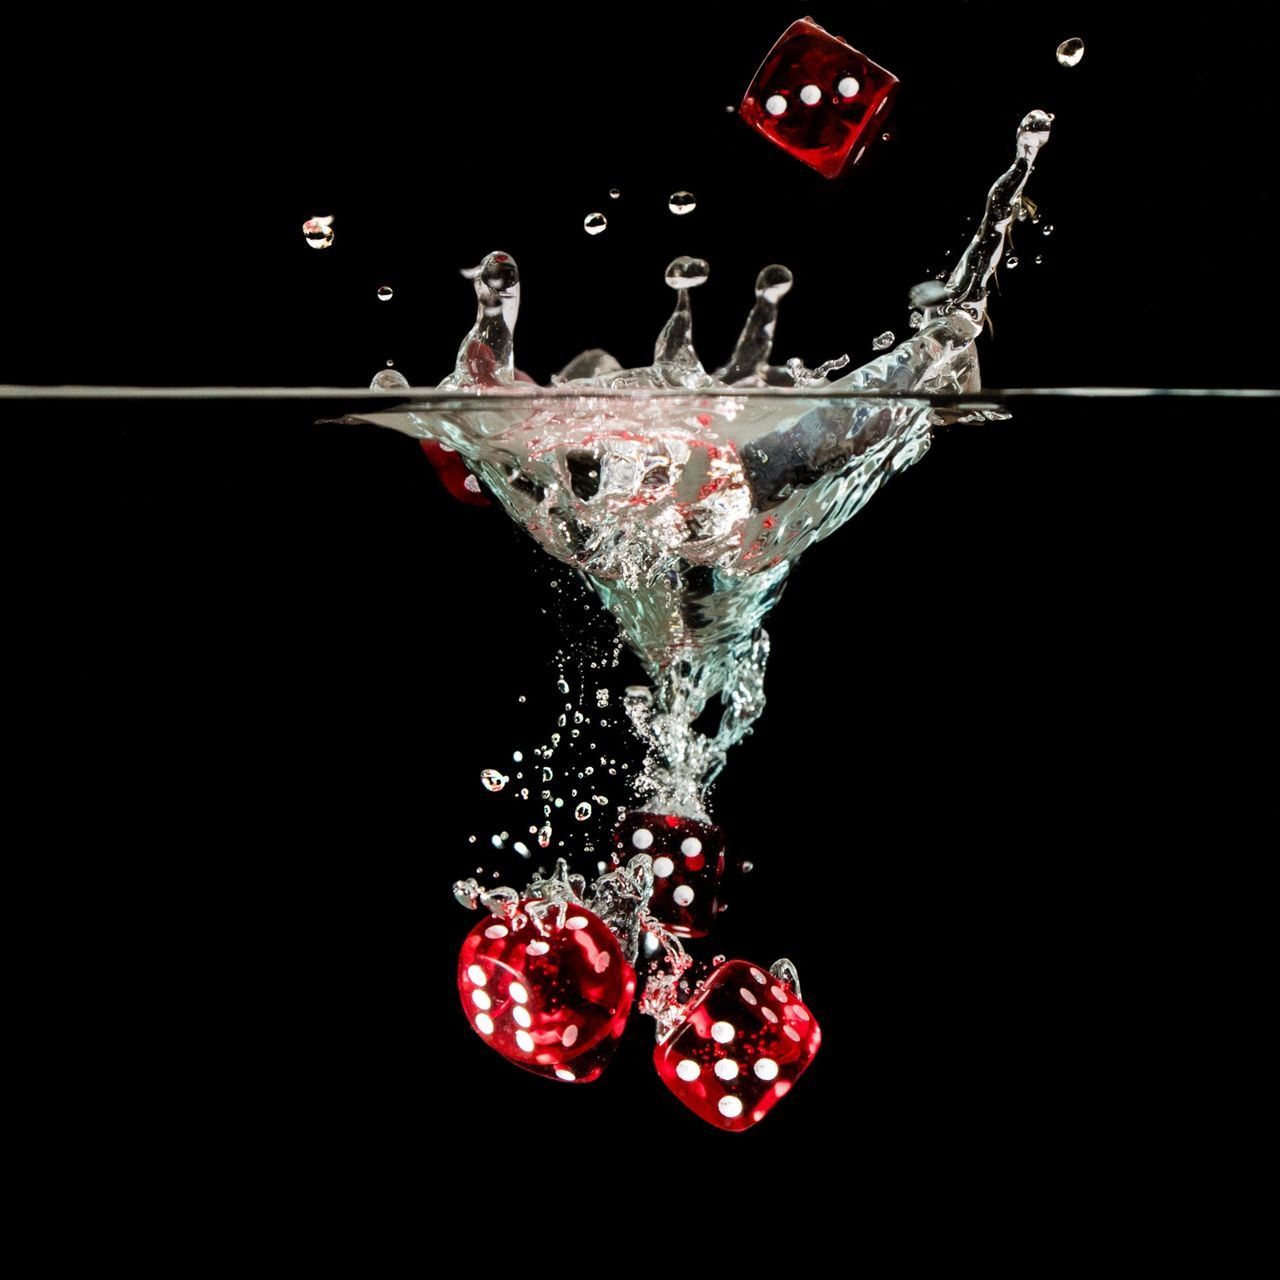 Close-up Motion Splashing Black Background Studio Shot Dark Red No People Splash Multi Colored Water Water Drops Eye4photography  Bubbles Black Background Cube Cubes GAMECUBE Game Cube Red Color Red Cube